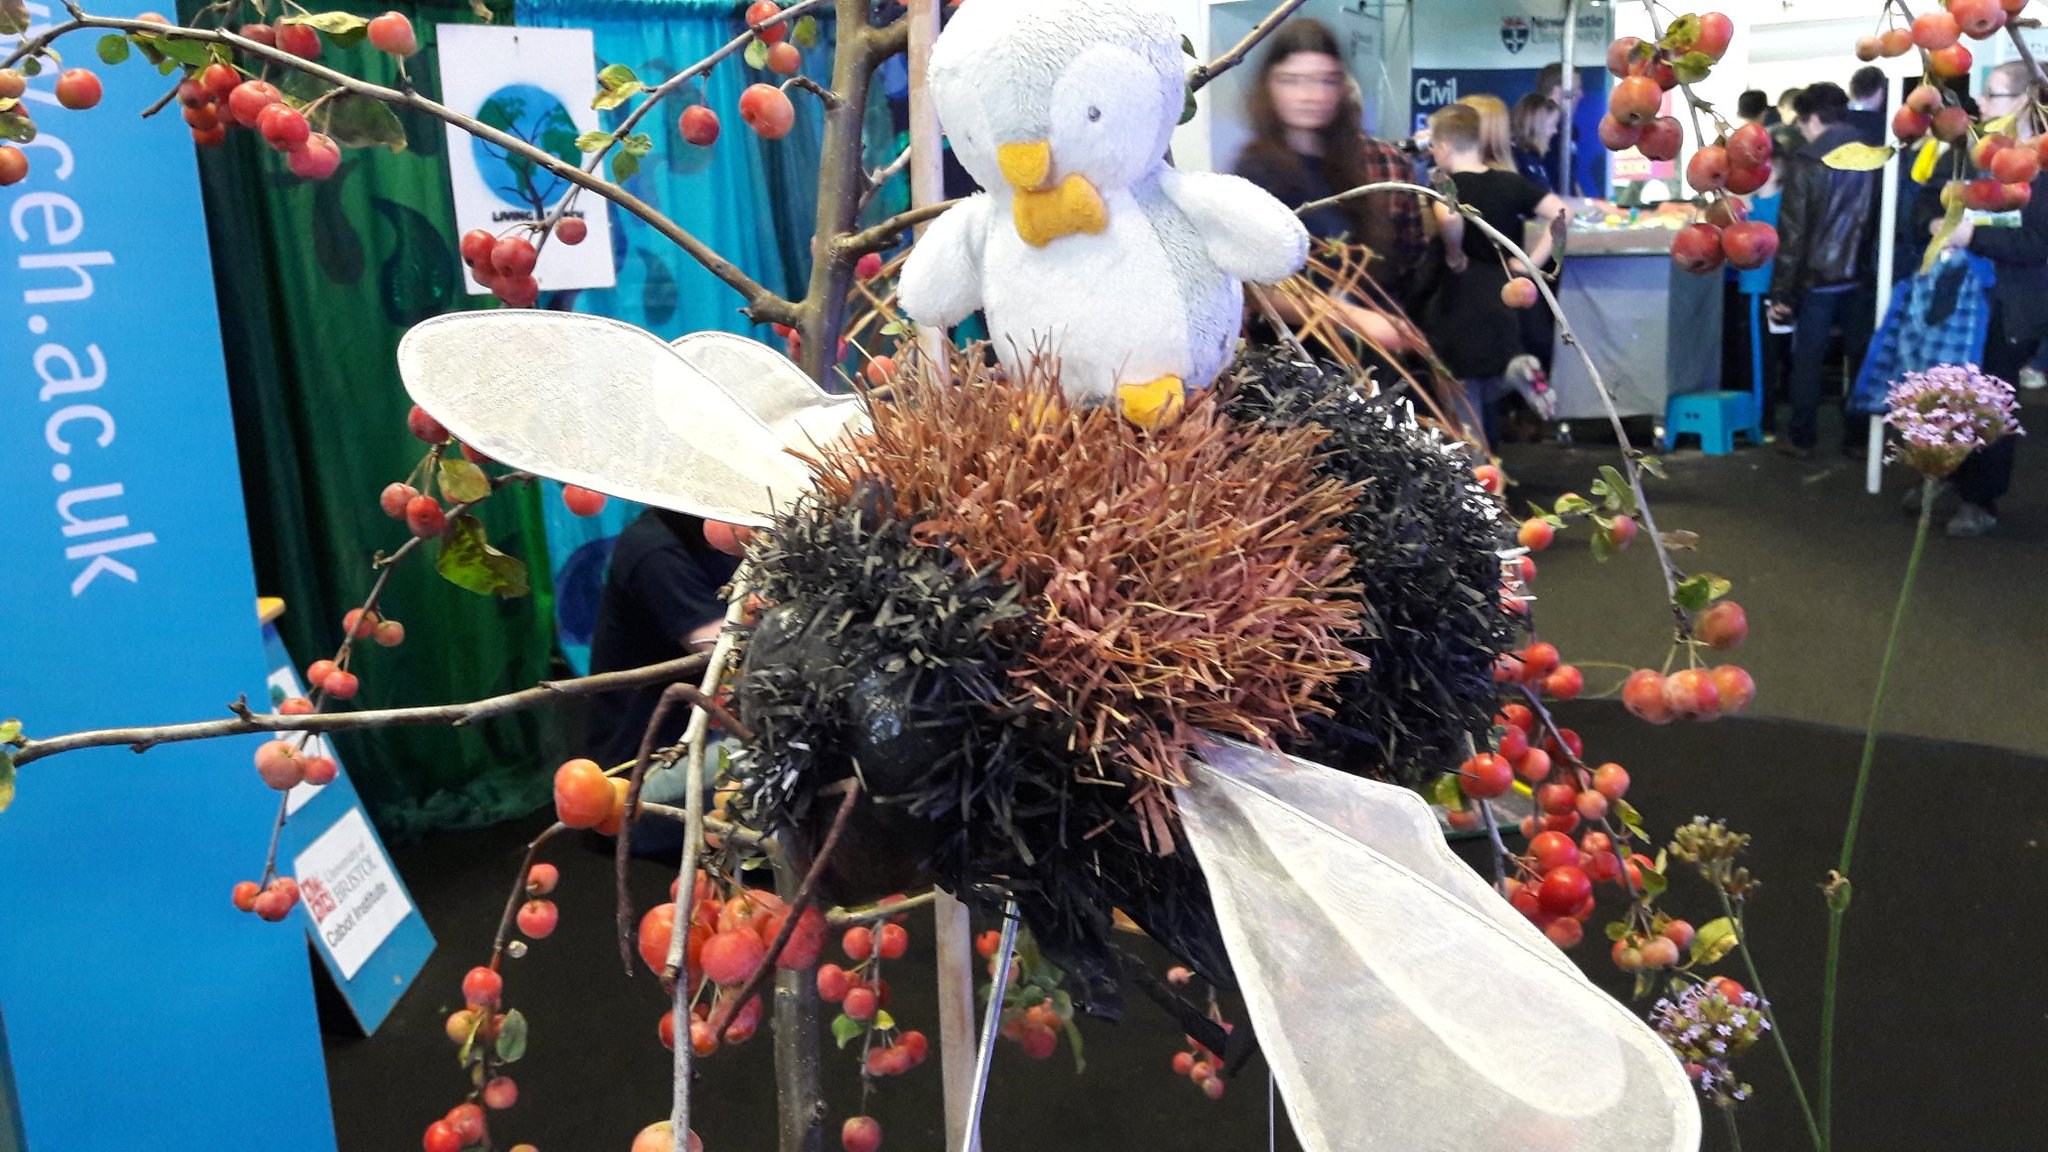 #itbpenguin had fun visiting the @CEHScienceNews stand at #NERCIntotheblue https://t.co/qkwHzRZ2Vy